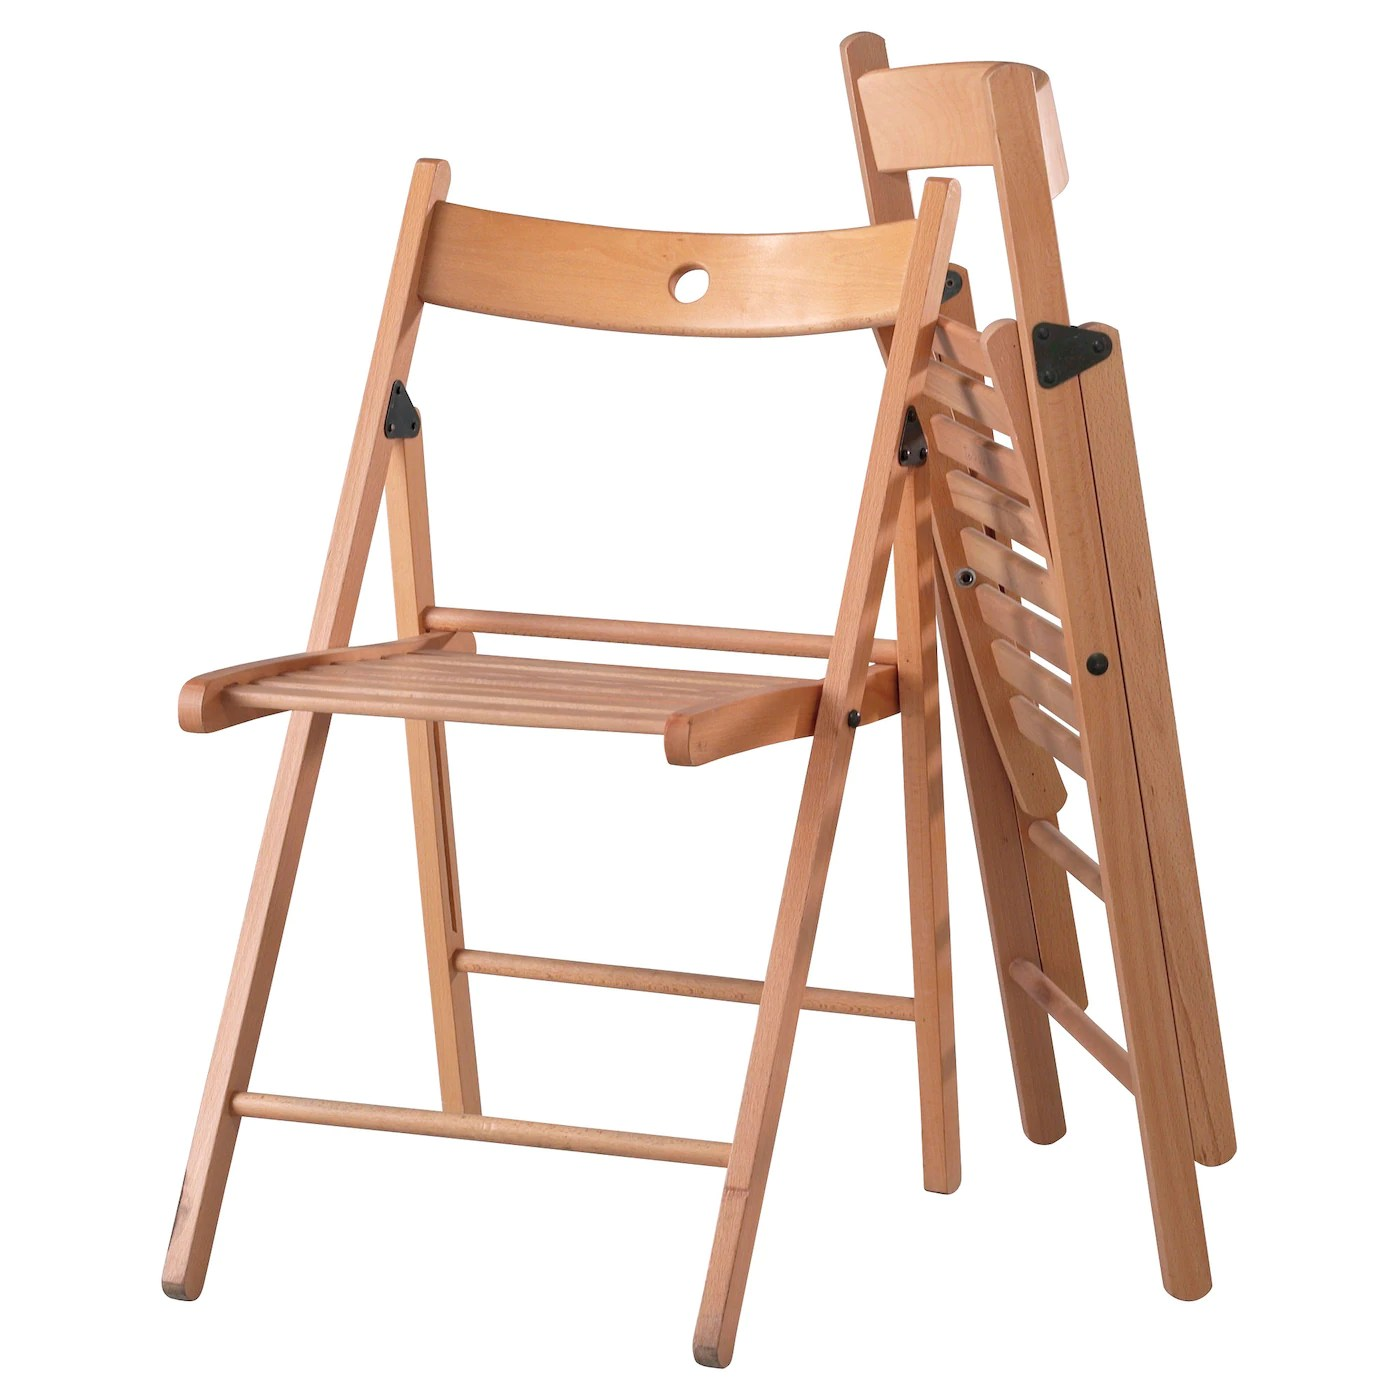 white folding chairs ikea student table and chair set terje beech